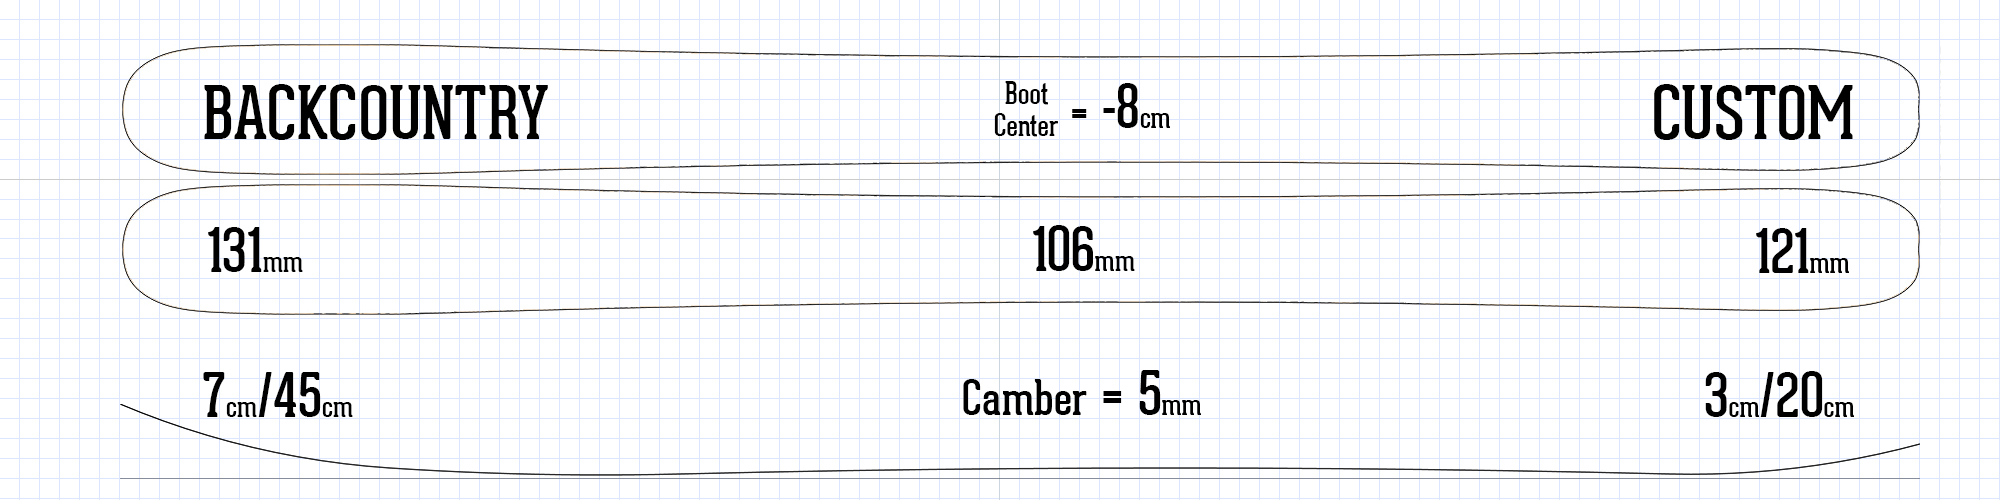 Backcountry ski information camber rocker profile specs